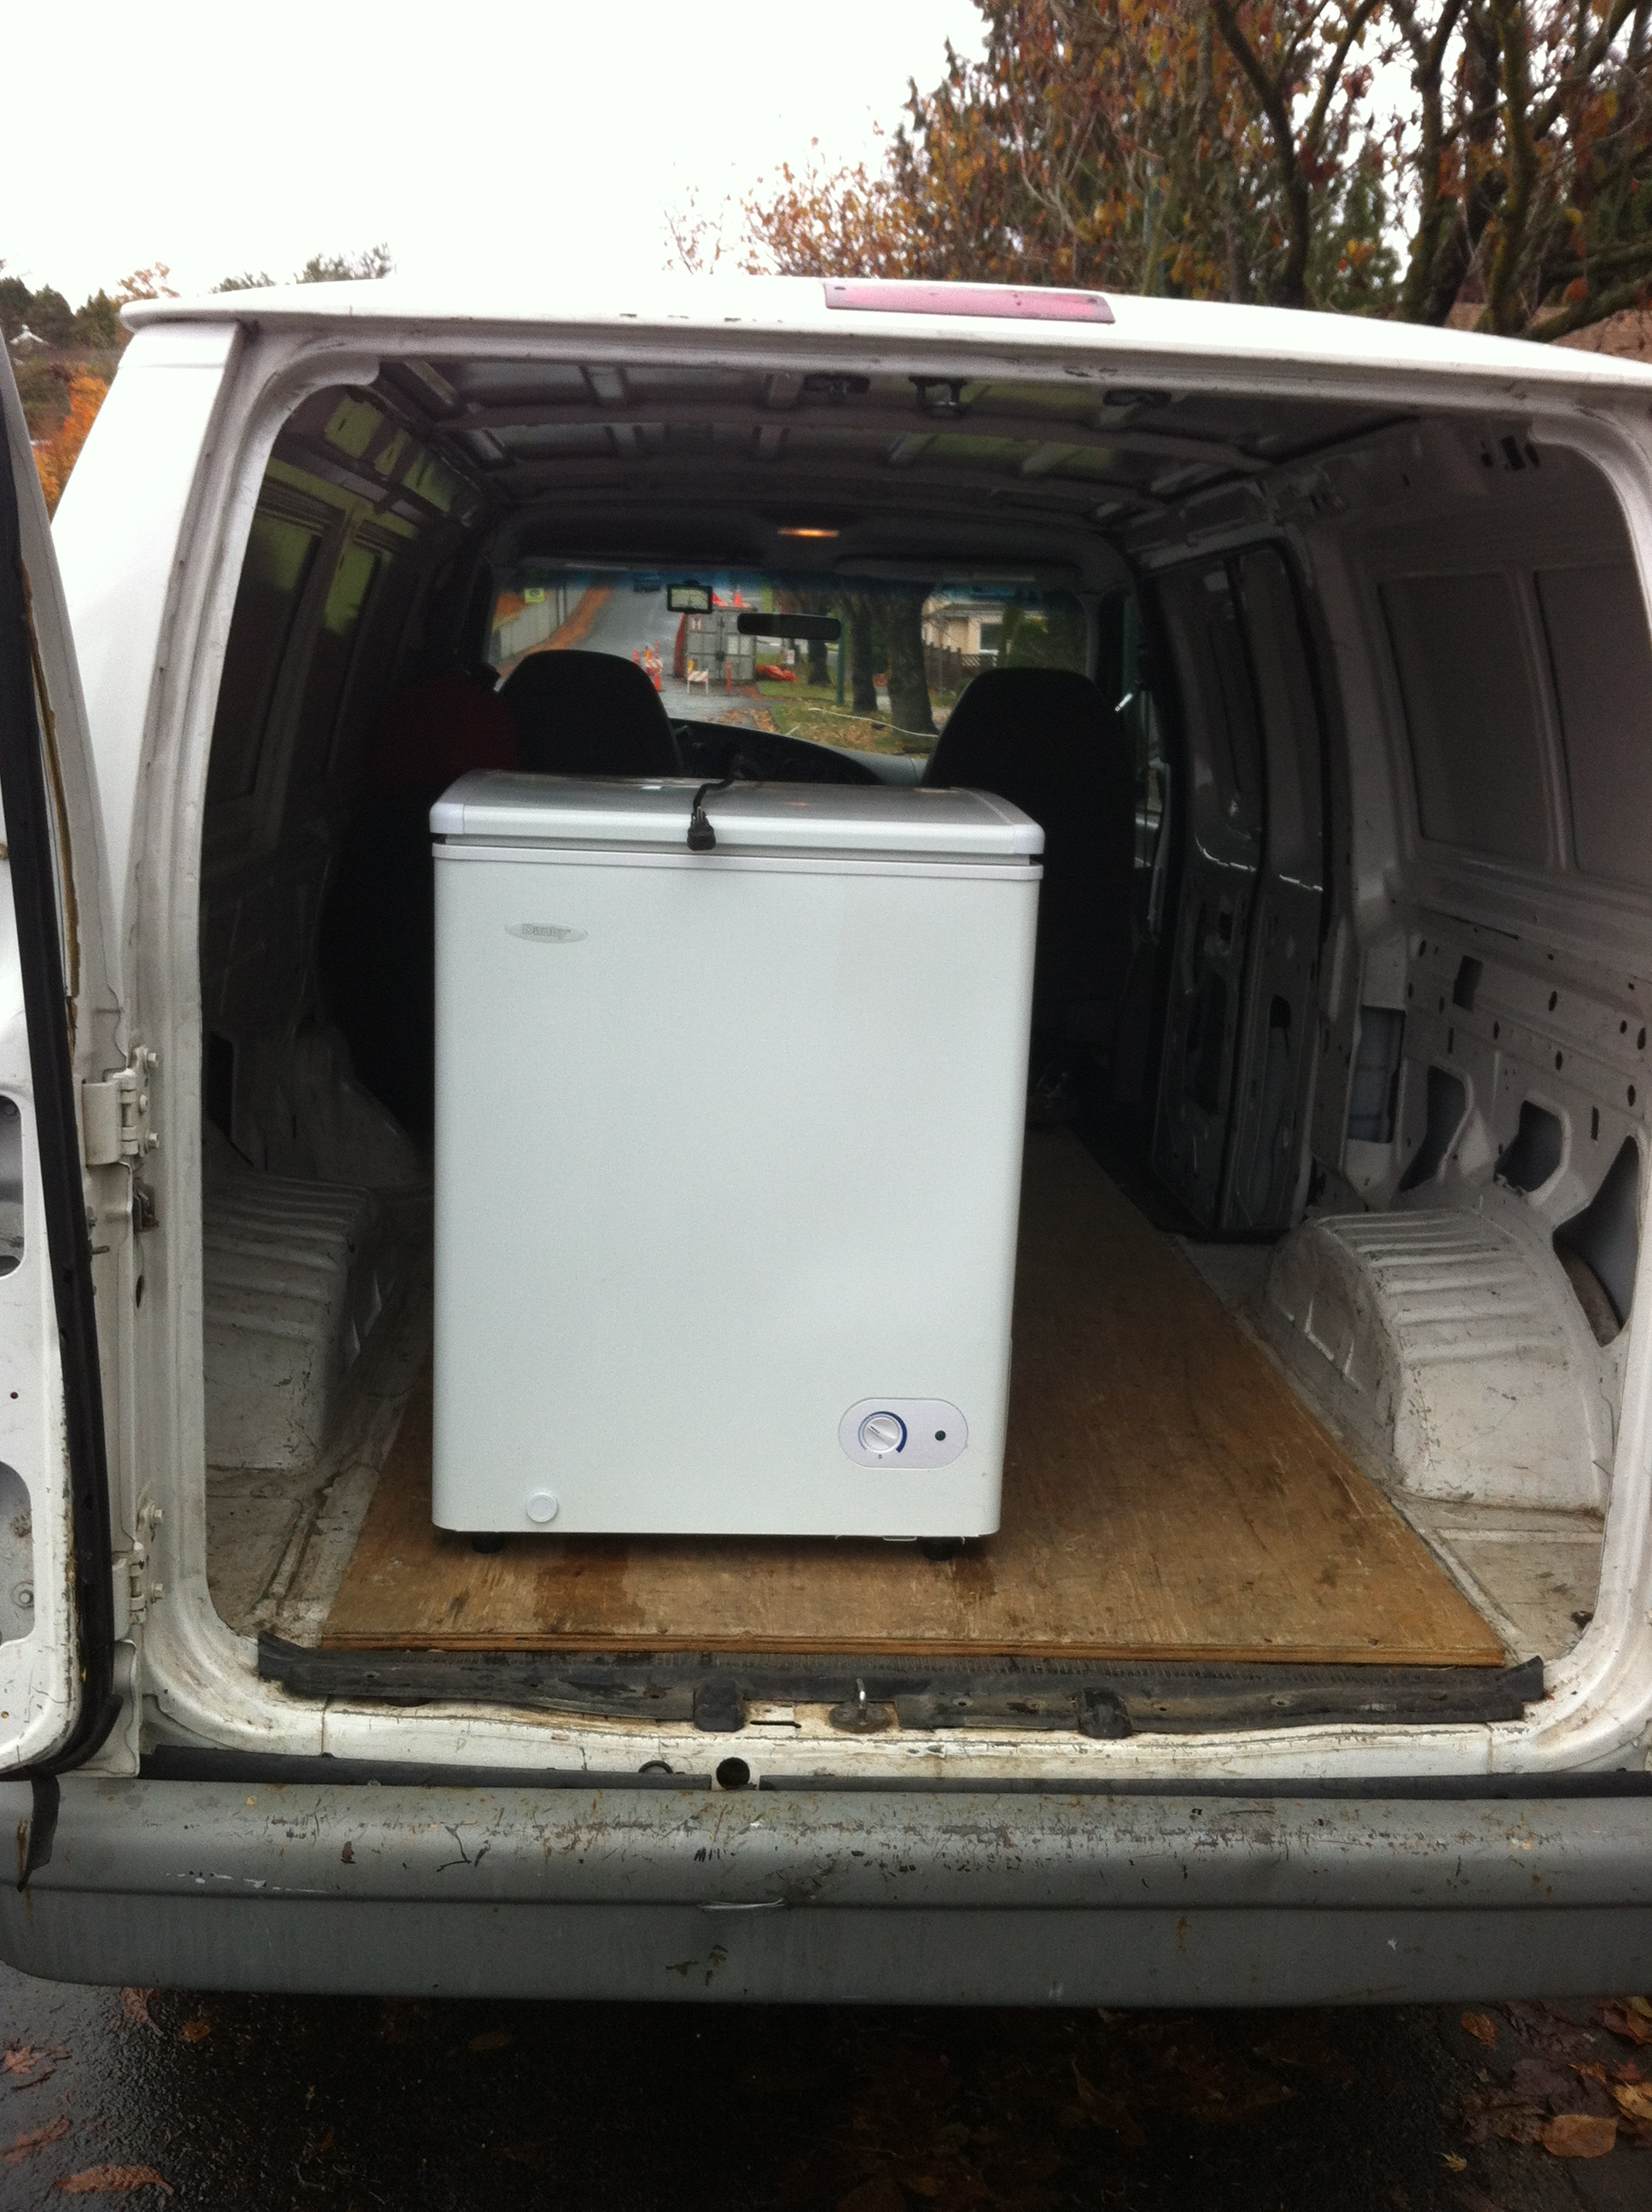 Ikea Richmond Delivery Ikea Appliance Delivery To East Vancouver Sam 39s Small